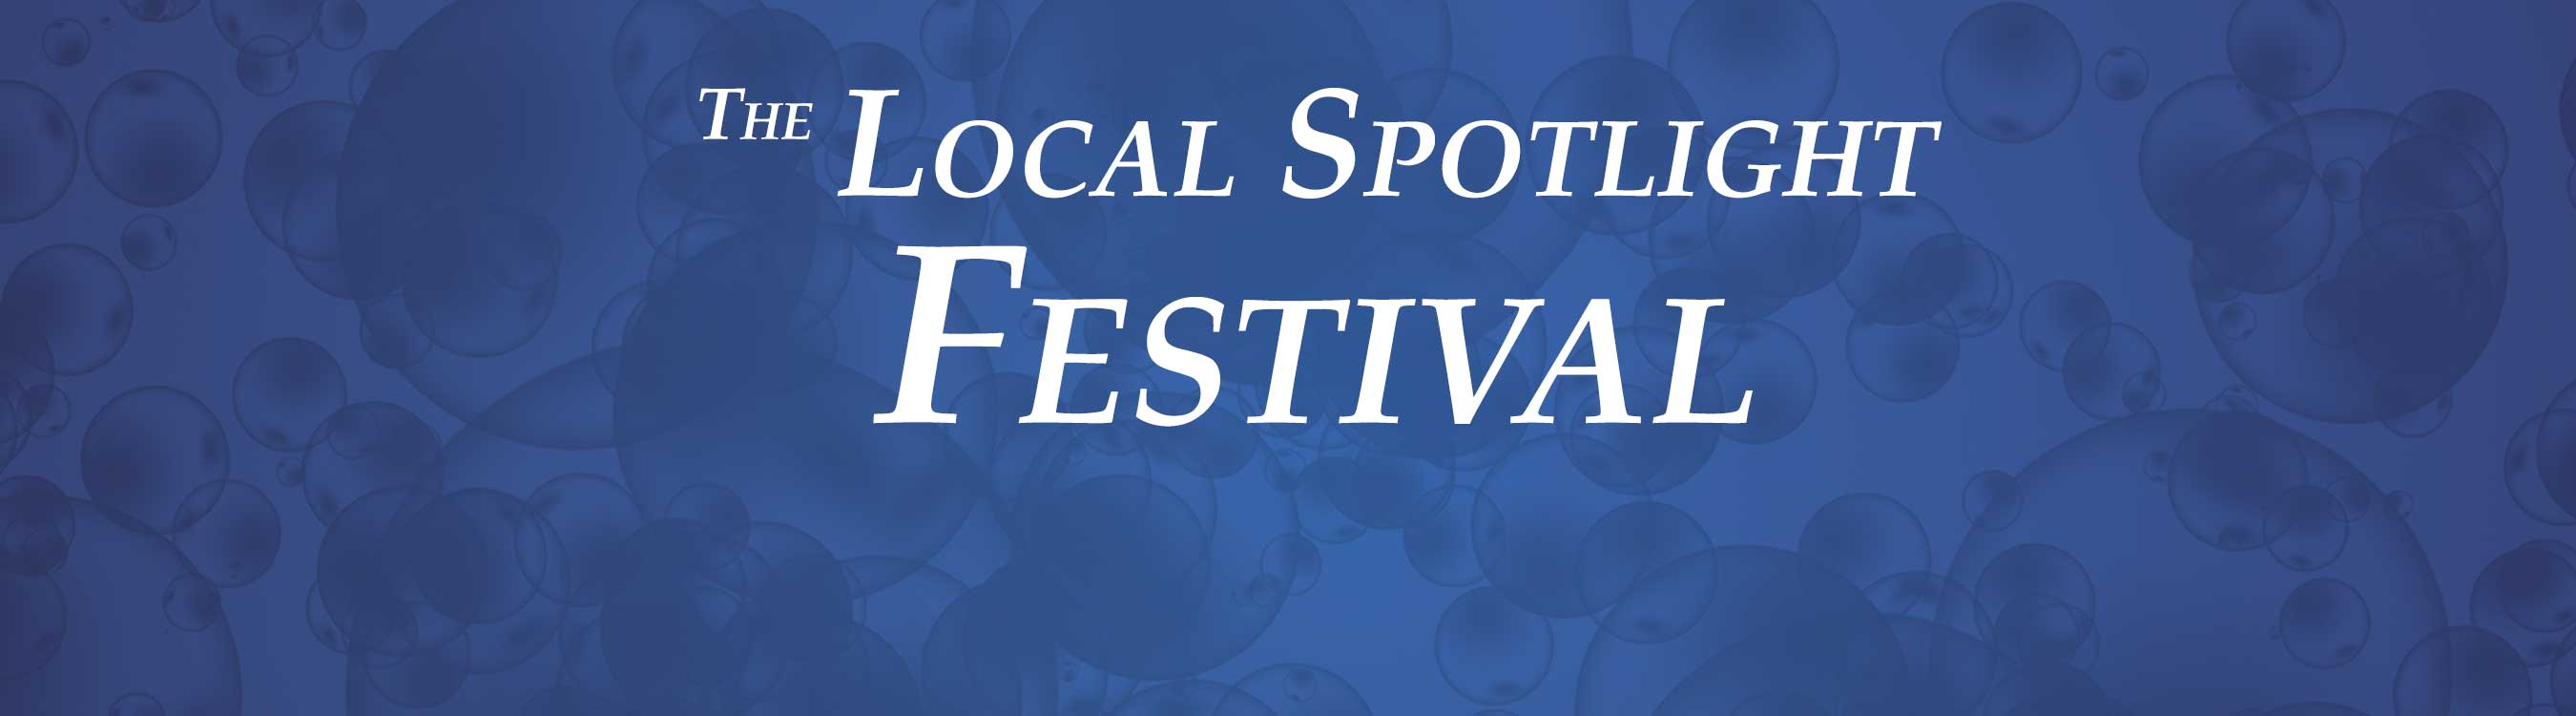 The Local Spotlight Festival